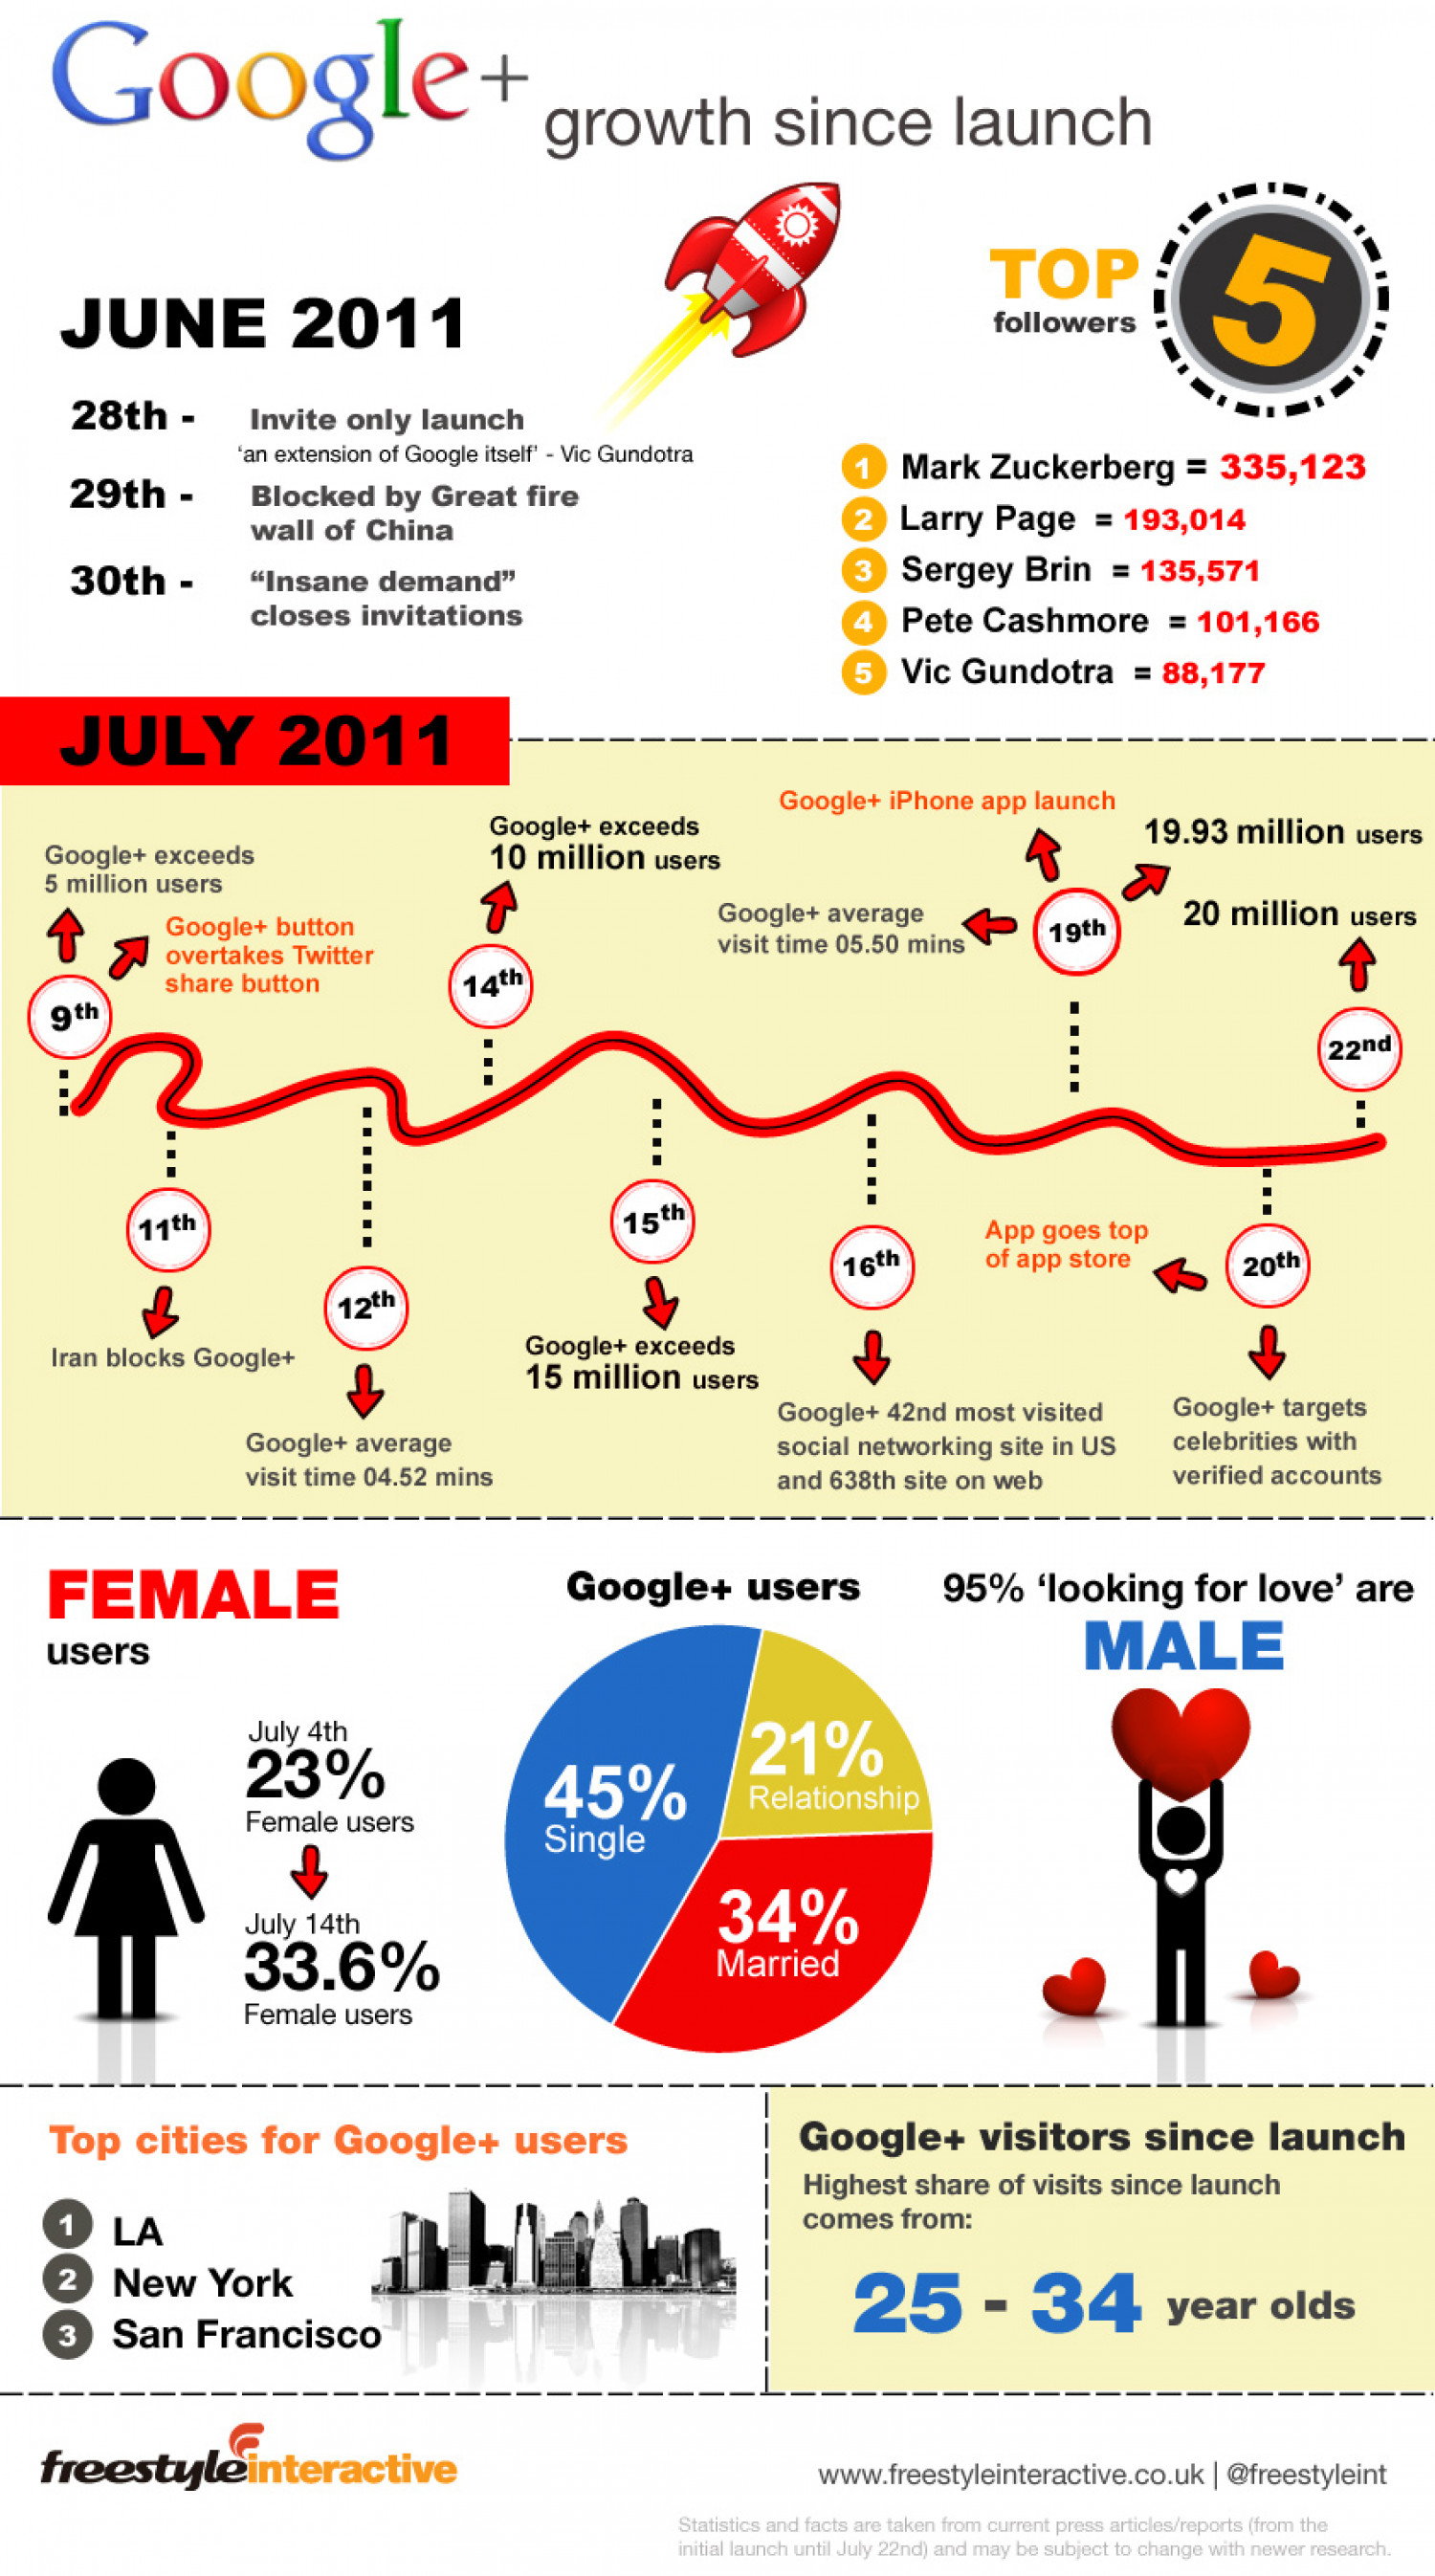 Google+ Growth Since Launch Infographic